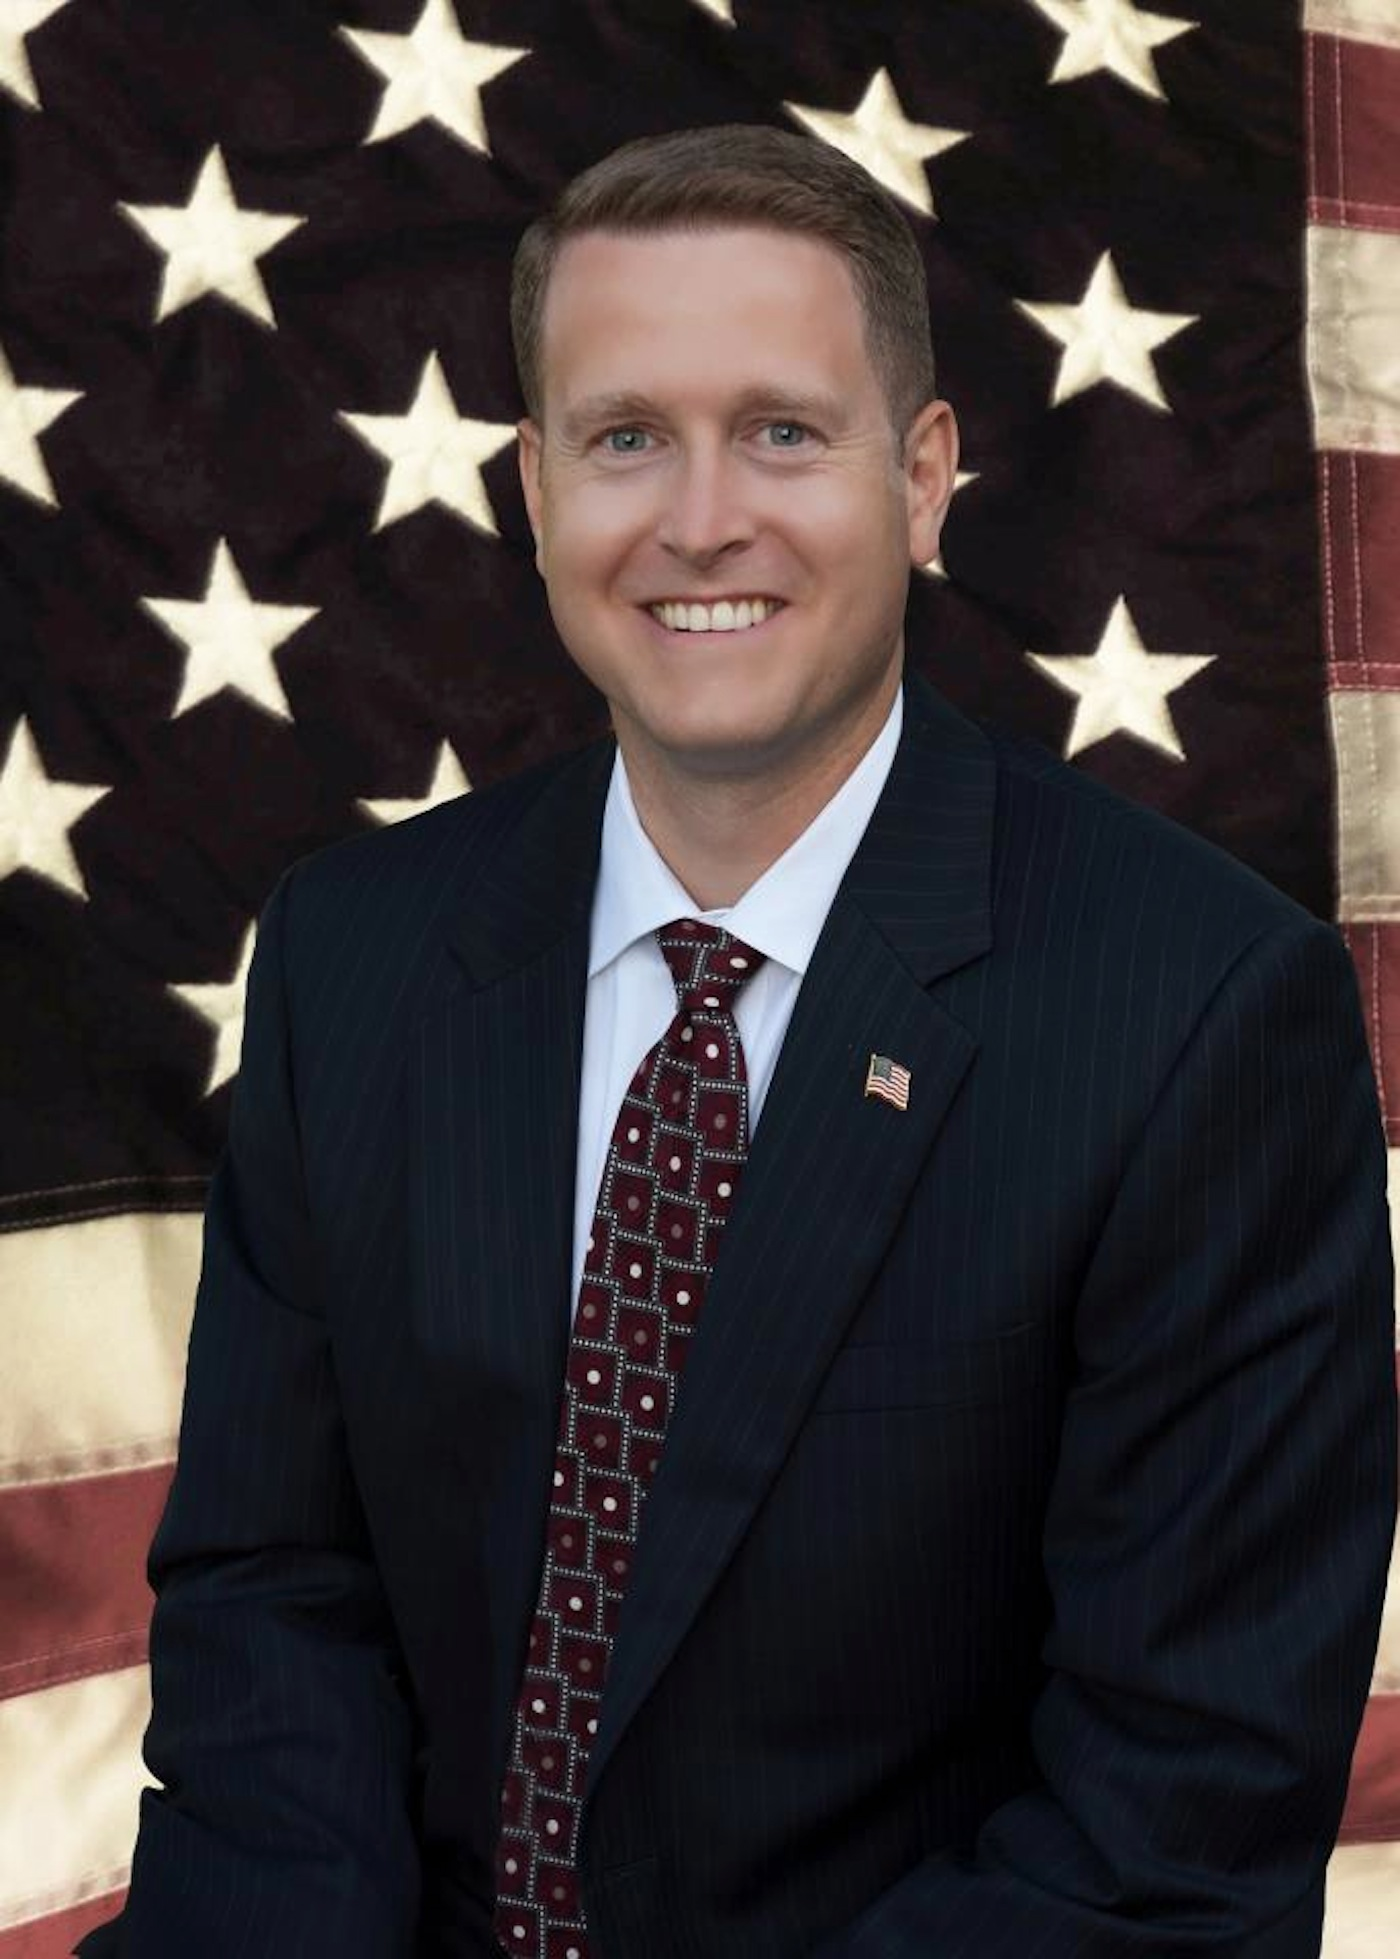 REP. MATT SHEA - PATRIOT RADIO